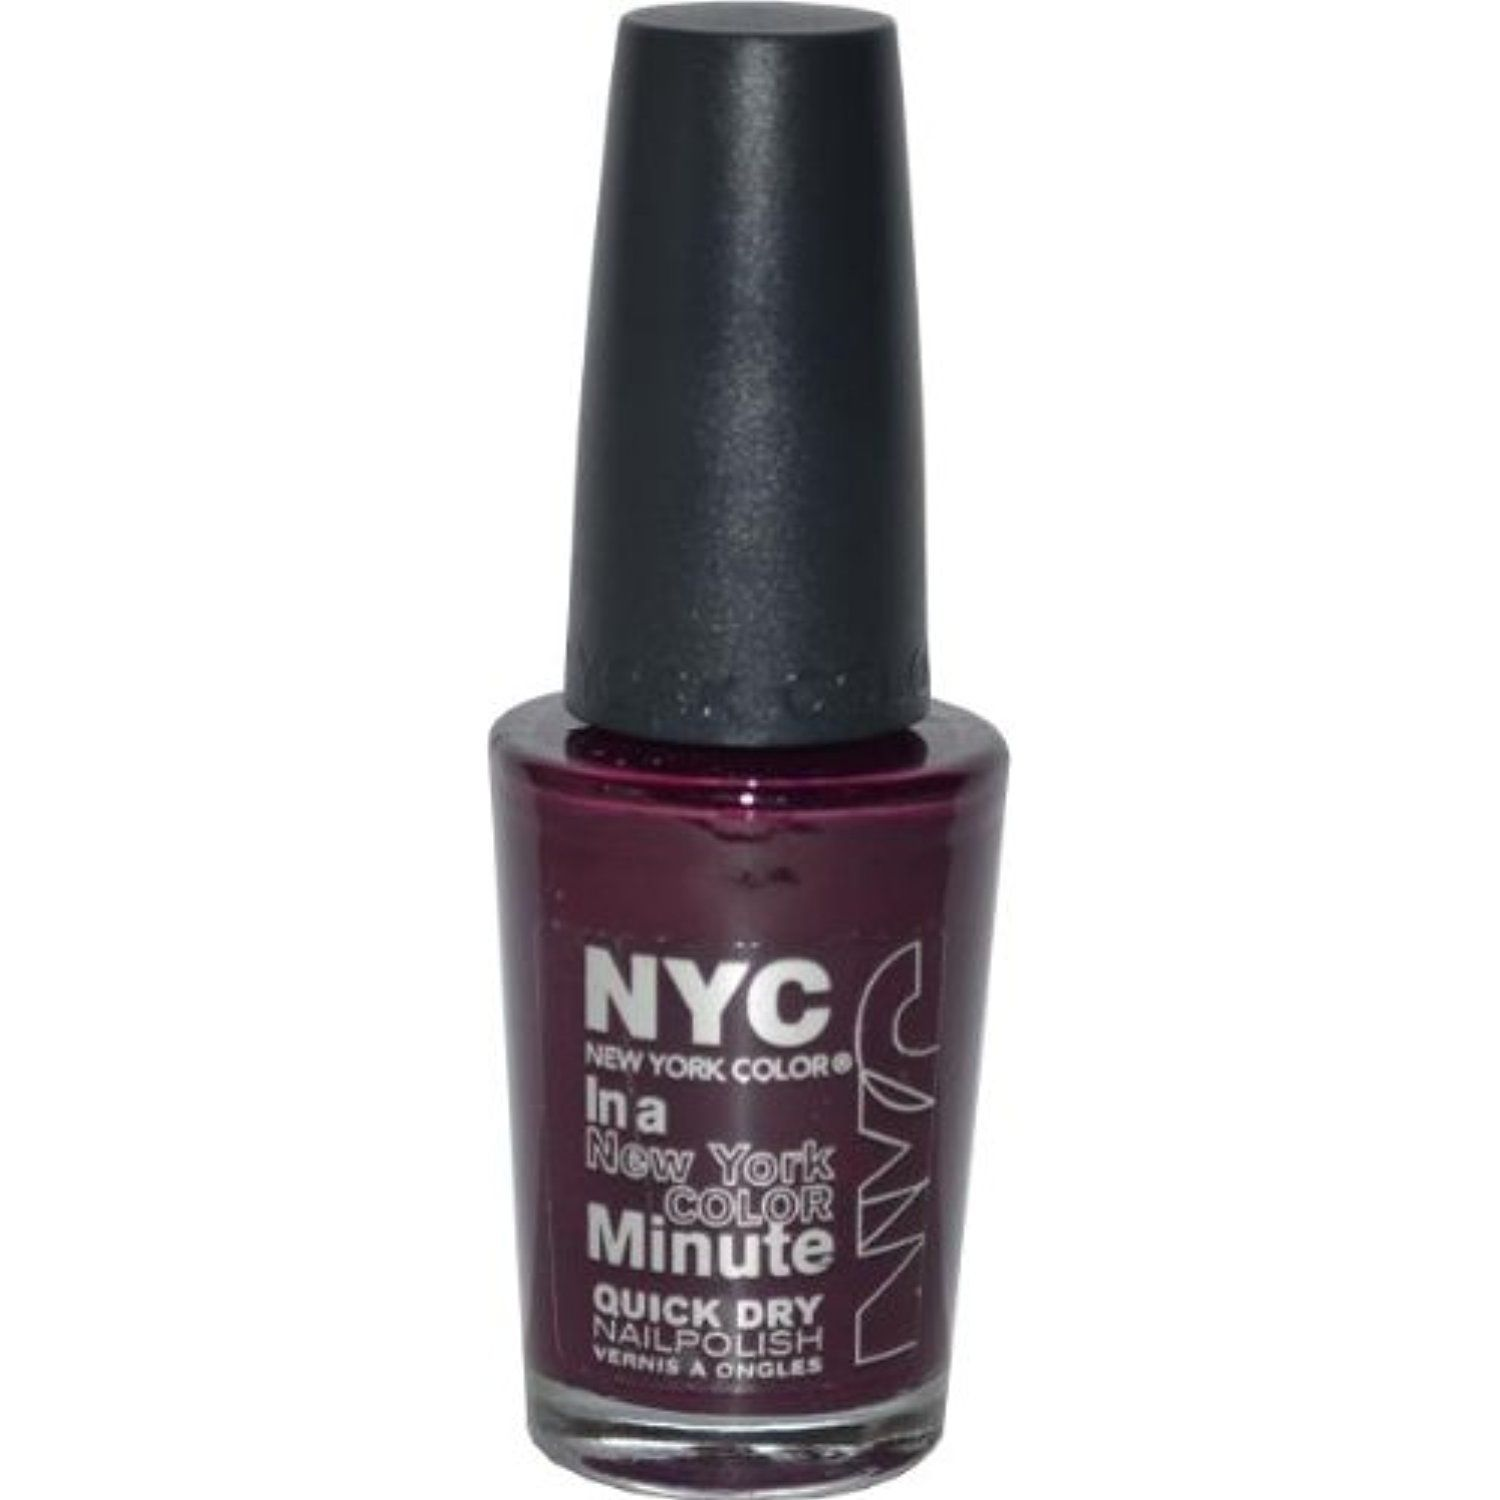 New York Color In A New York Color Minute Quick Dry Nail Polish ...